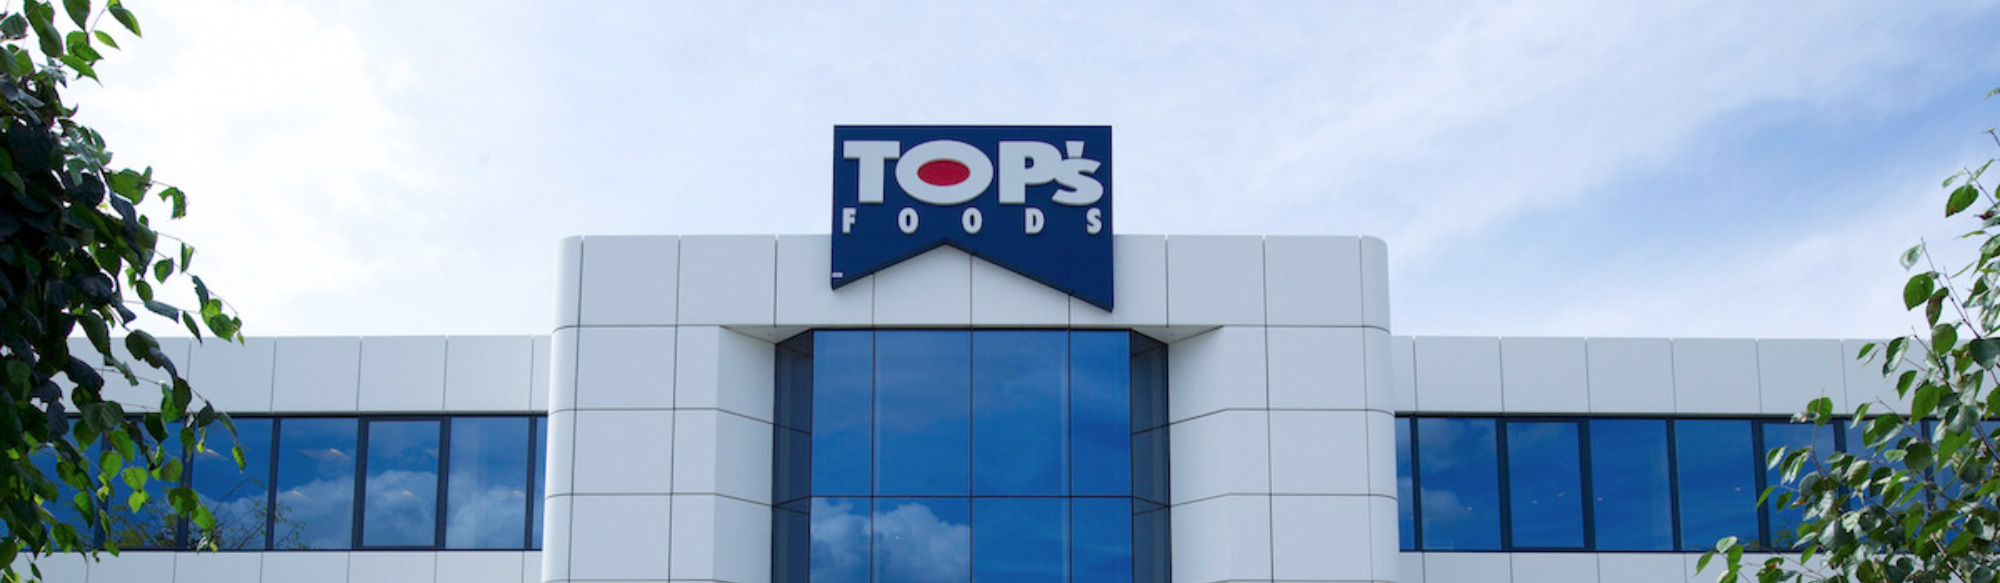 Contact Tops Foods in Olen, Belgium for healty, nutricious and safe single serve meals